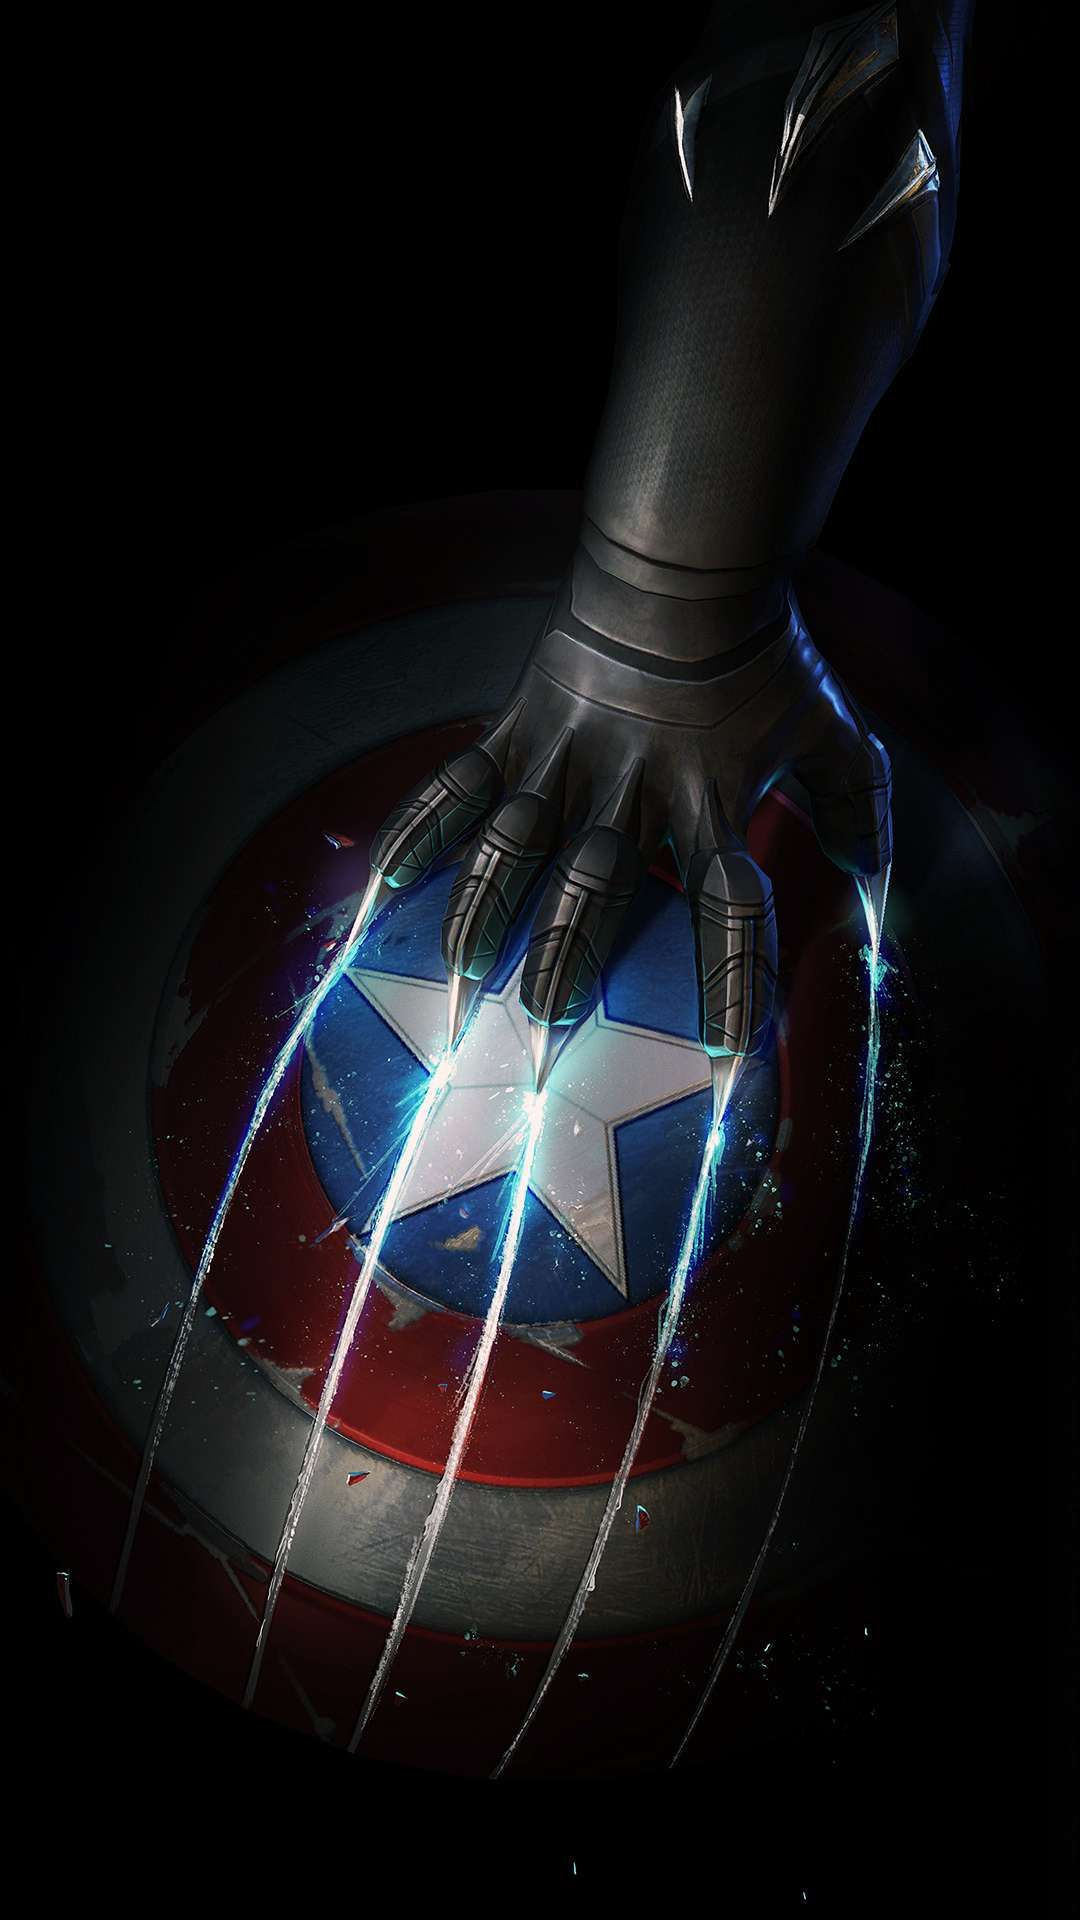 Captain America Amoled Iphone Wallpaper Marvel Comics Wallpaper Marvel Superhero Posters Marvel Comics Superheroes